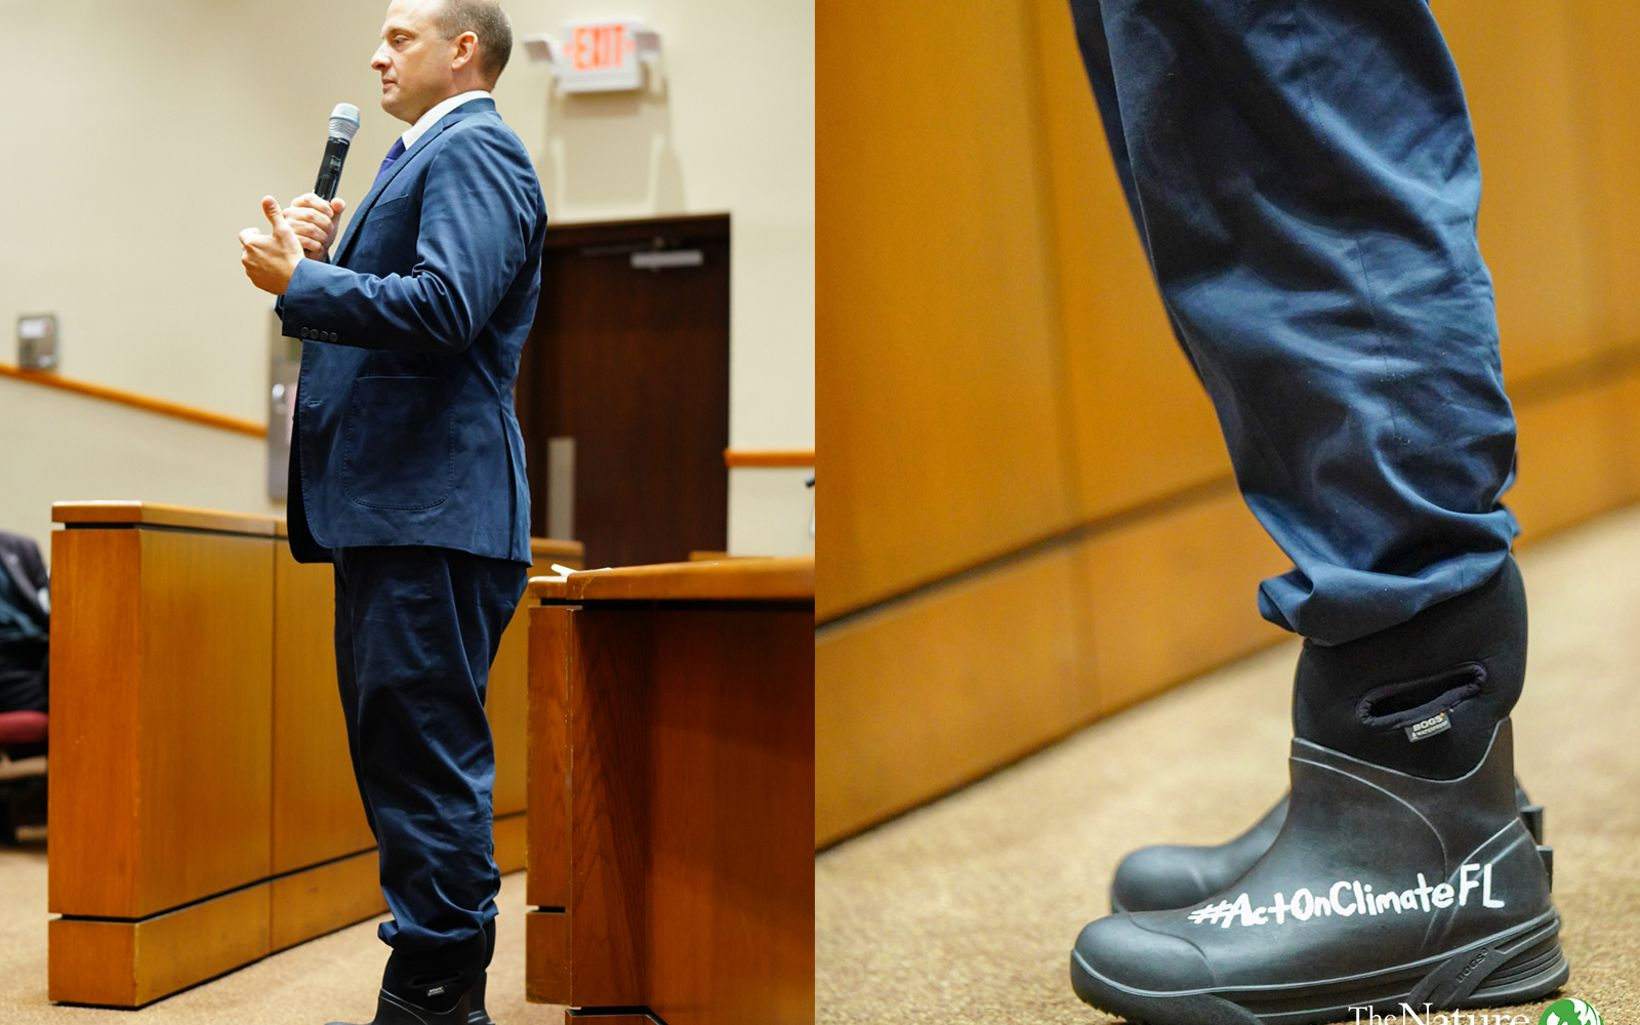 Javier Rodriguez wearing a blue suit and black neoprene and rubber rain boots with '#ActOnClimateFL' written on them.